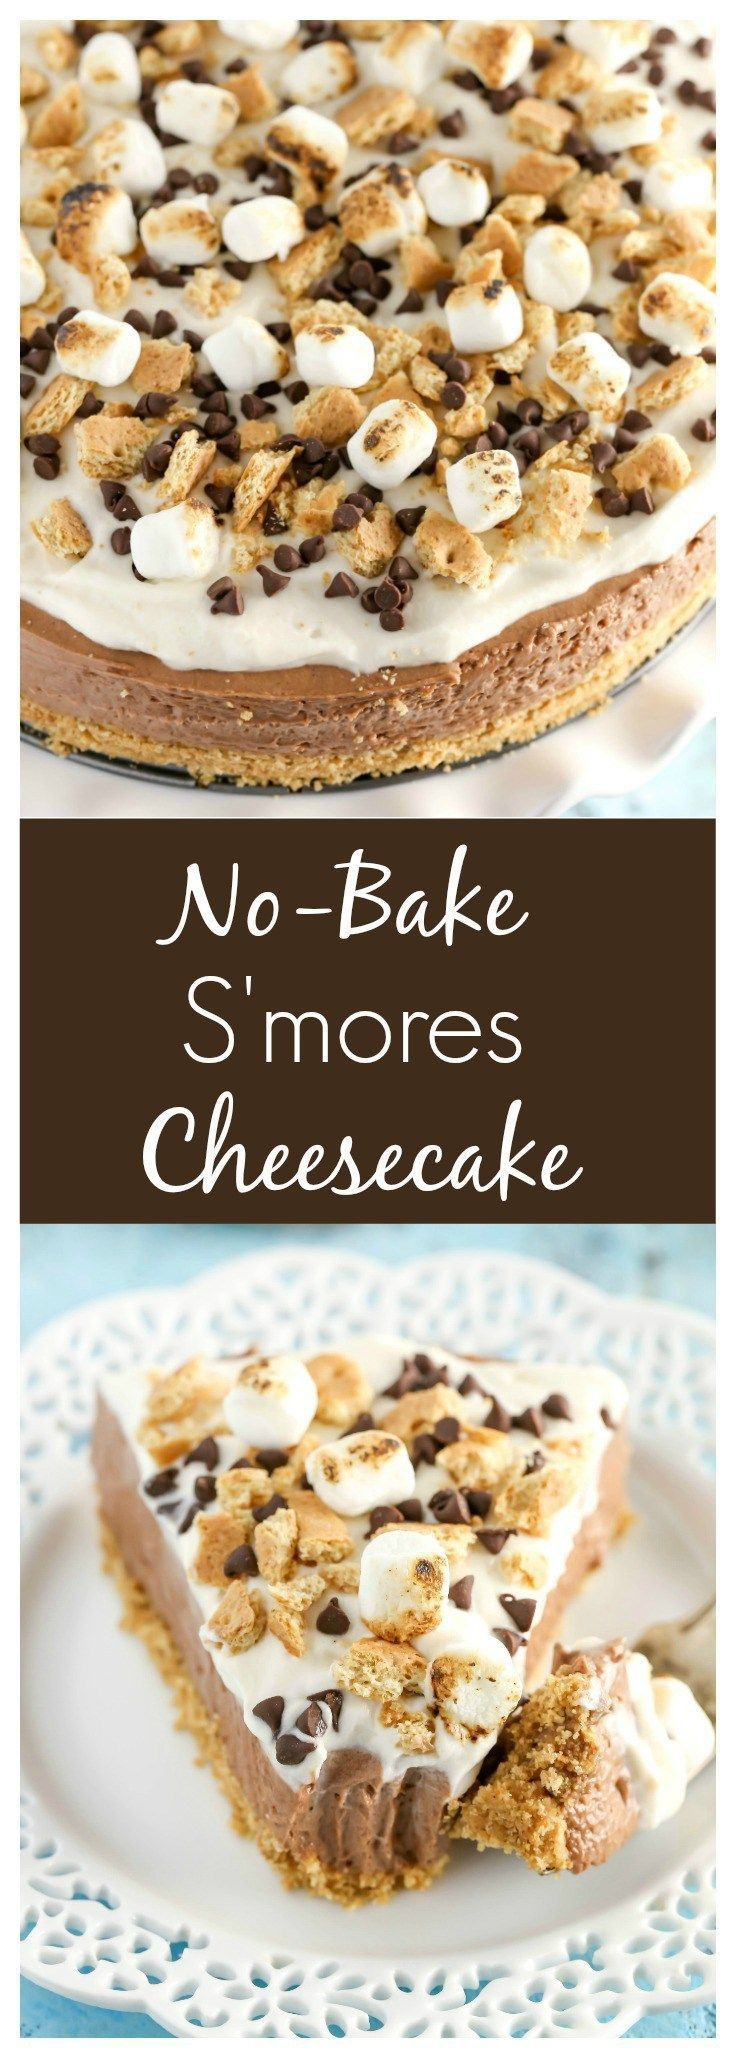 homemade graham cracker crust topped with a no-bake chocolate cheesecake filling and marshmallow fluff whipped cream. This No-Bake S'mores Cheesecake is the ultimate summer dessert!